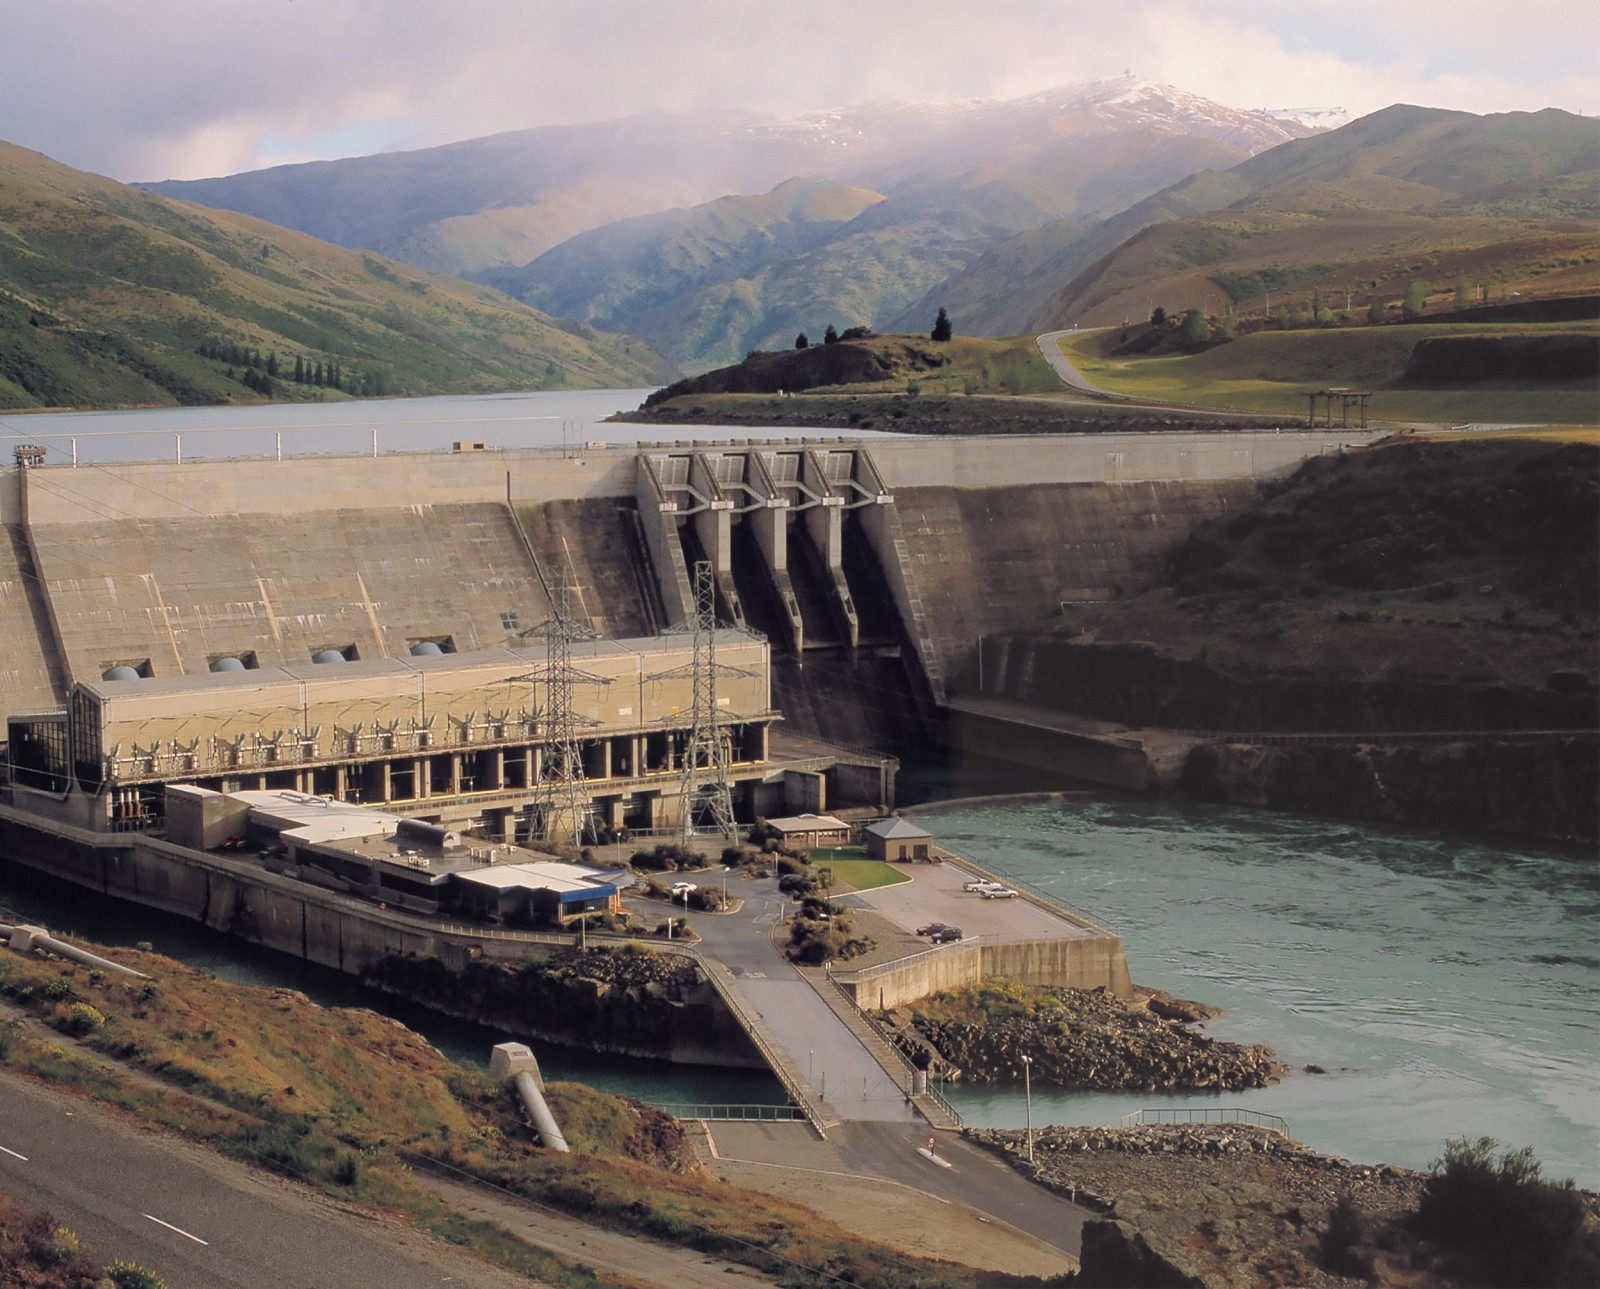 The Clyde dam, the largest concrete dam in New Zealand, is 100 m high, 490 m long, contains one million cubic metres of concrete and can produce 432 megawatts of electricity. Controversial from its inception—much of the town of Cromwell had to be rebuilt or relocated as the dam's lake filled, and there were concerns about land stability and cost overruns—the project was completed in 1993.